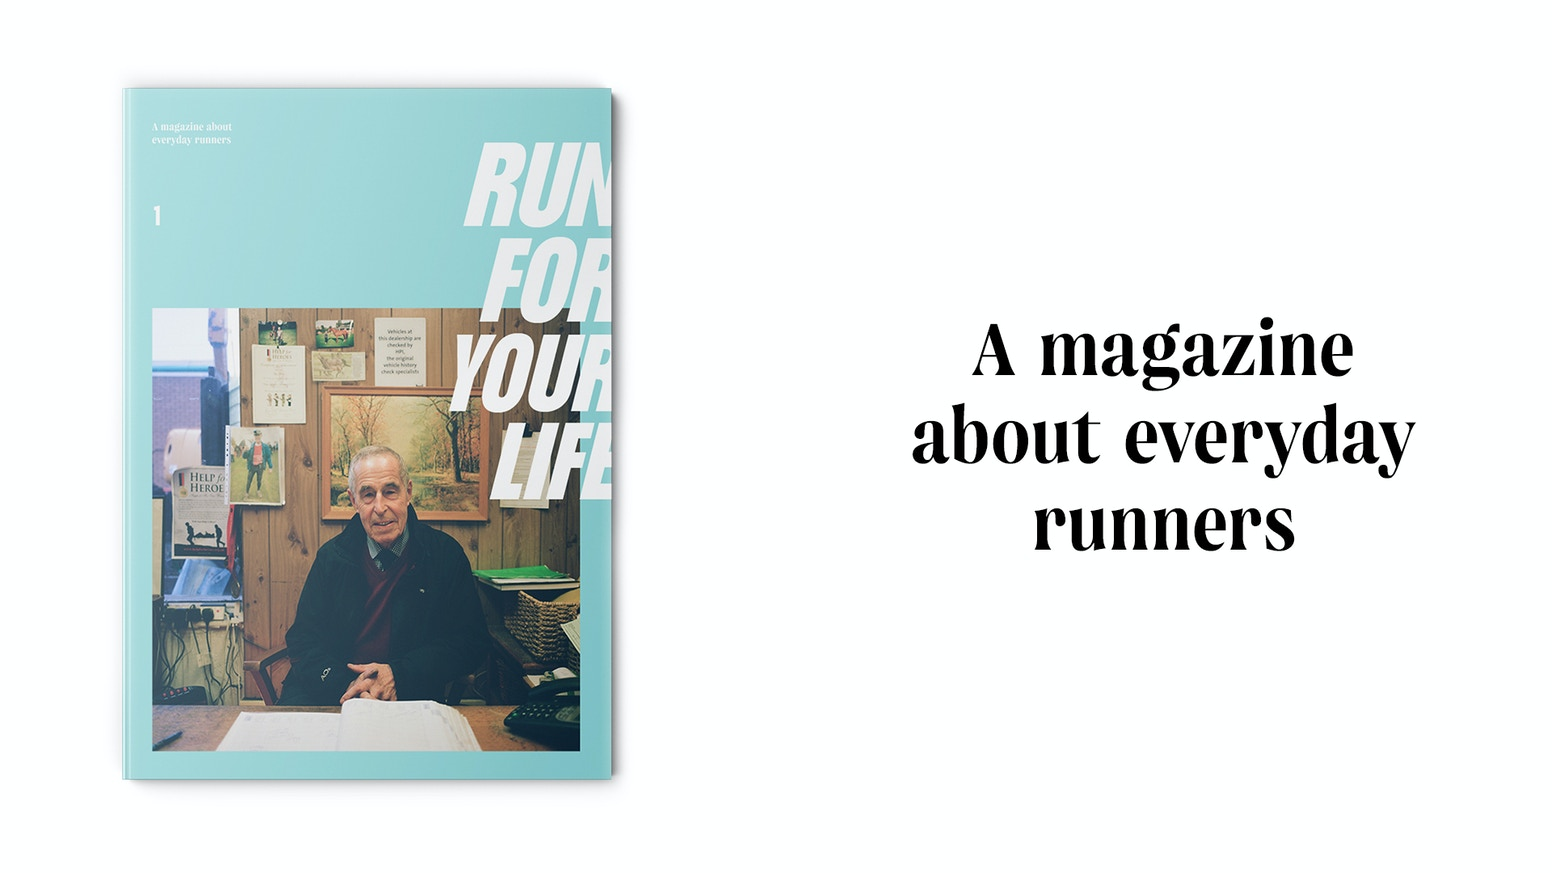 Eleven people share their stories of running – from the humdrum to the magnificent.